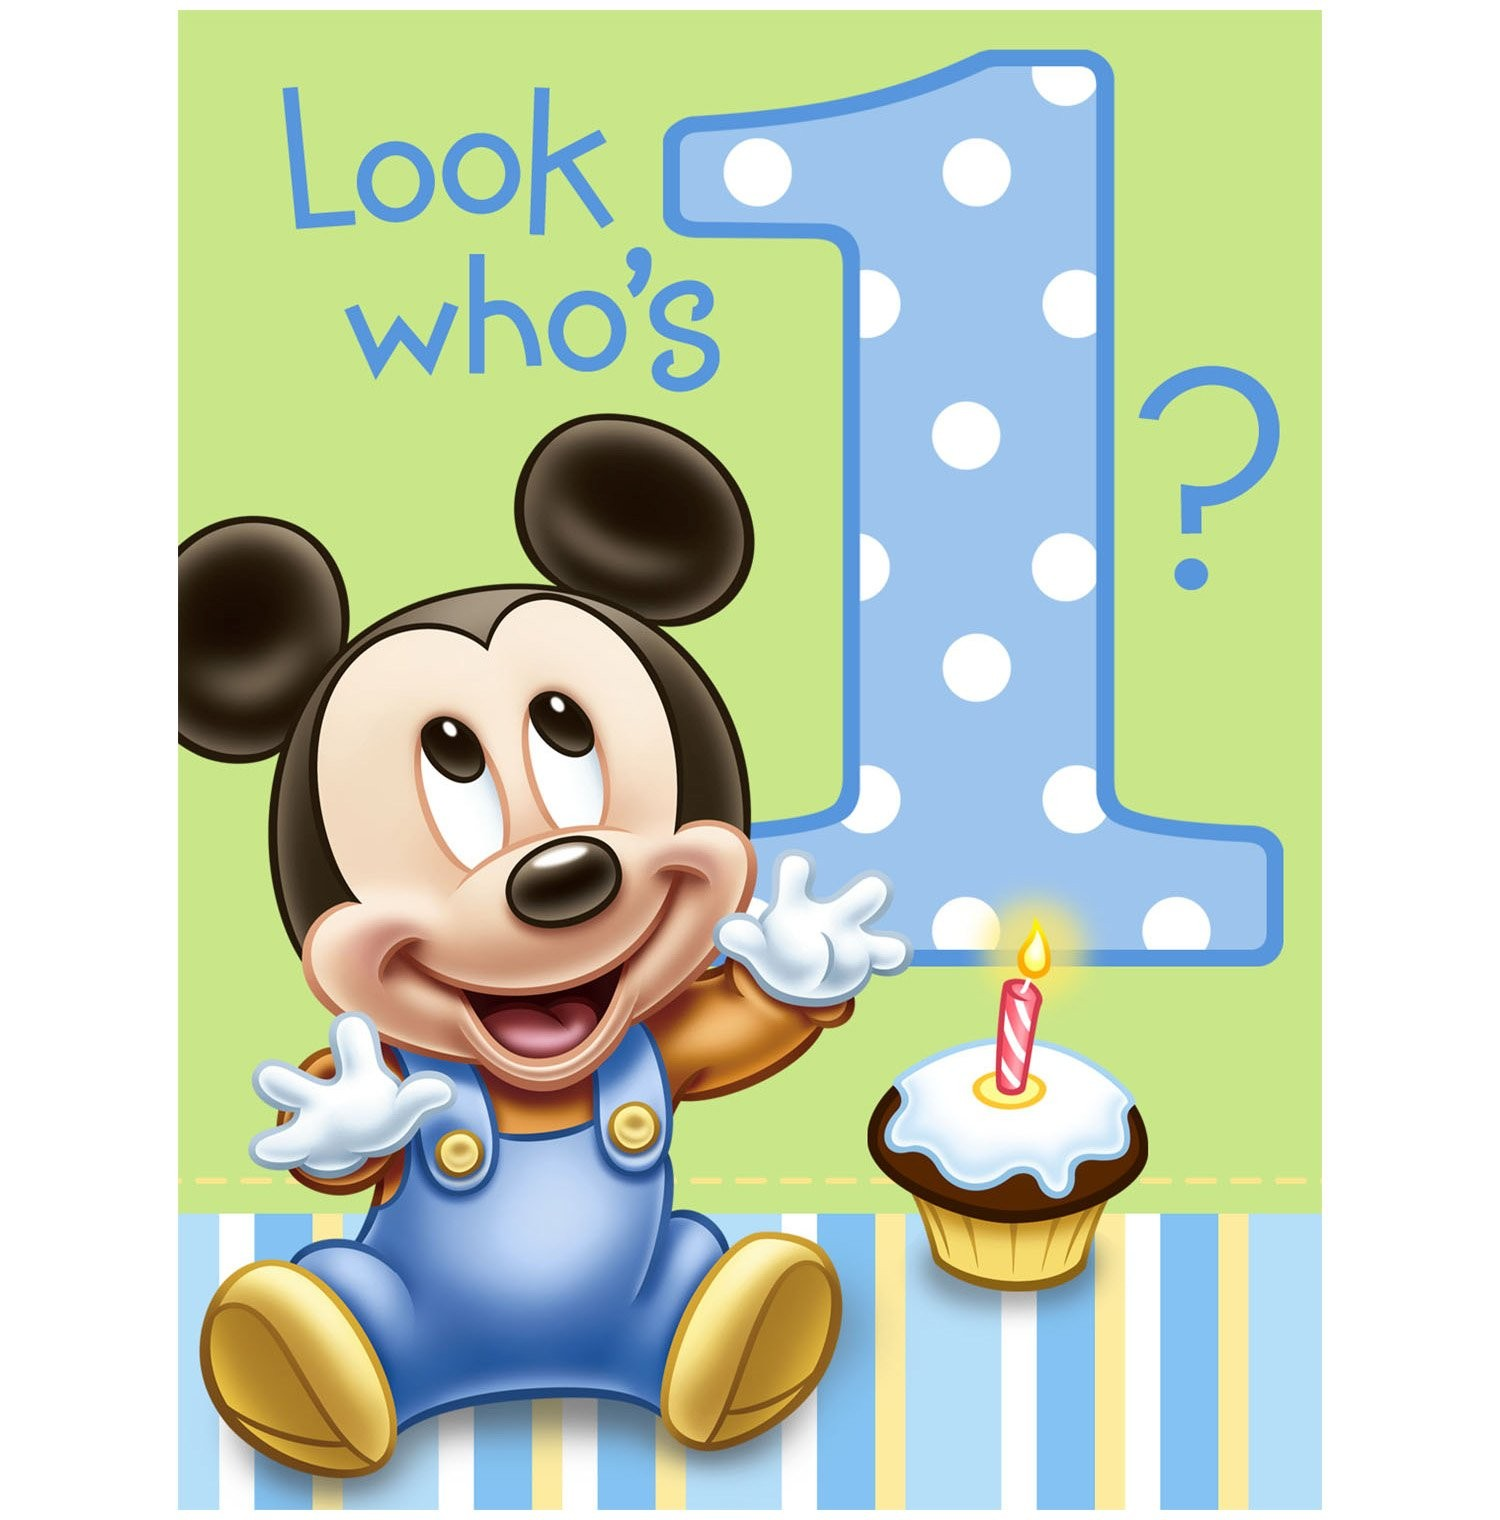 1st birthday greeting messages ; first-birthday-wishes-best-happy-1st-birthday-first-birthday-wishes-happy-first-birthday-collection-of-first-birthday-wishes